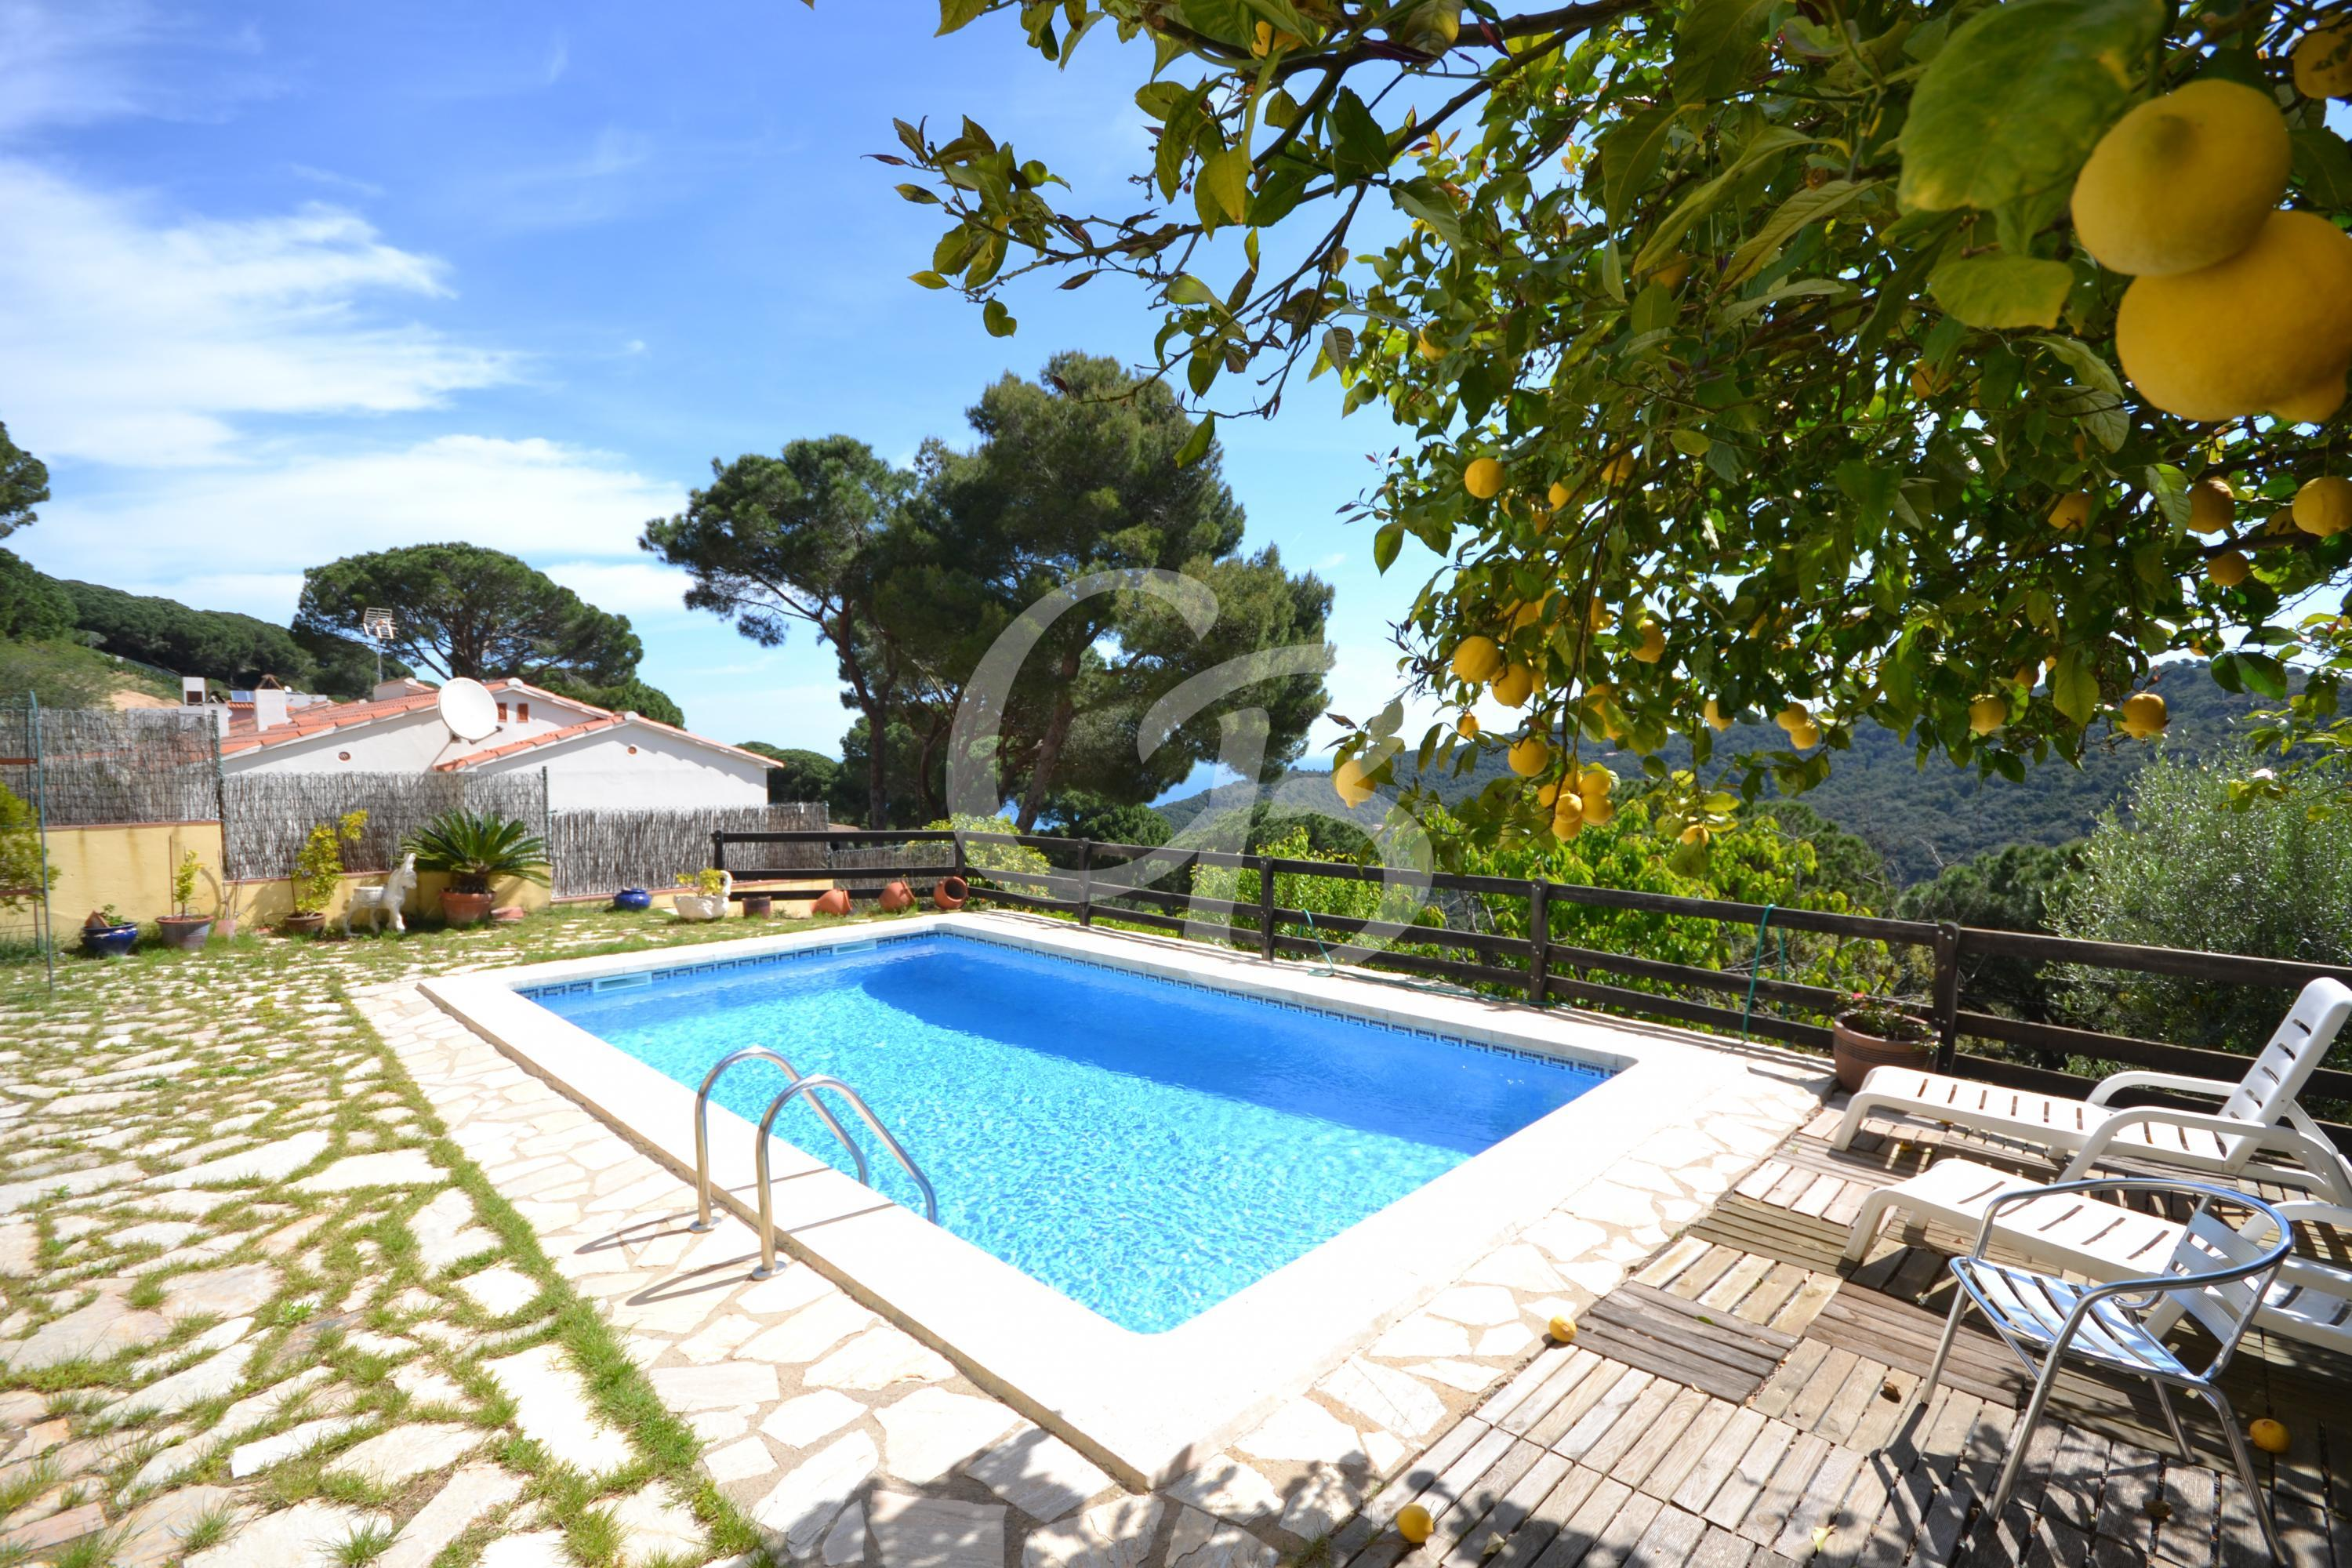 159 FANTASTICA CASA CON PISCINA EN ES VALLS Detached house Begur Begur